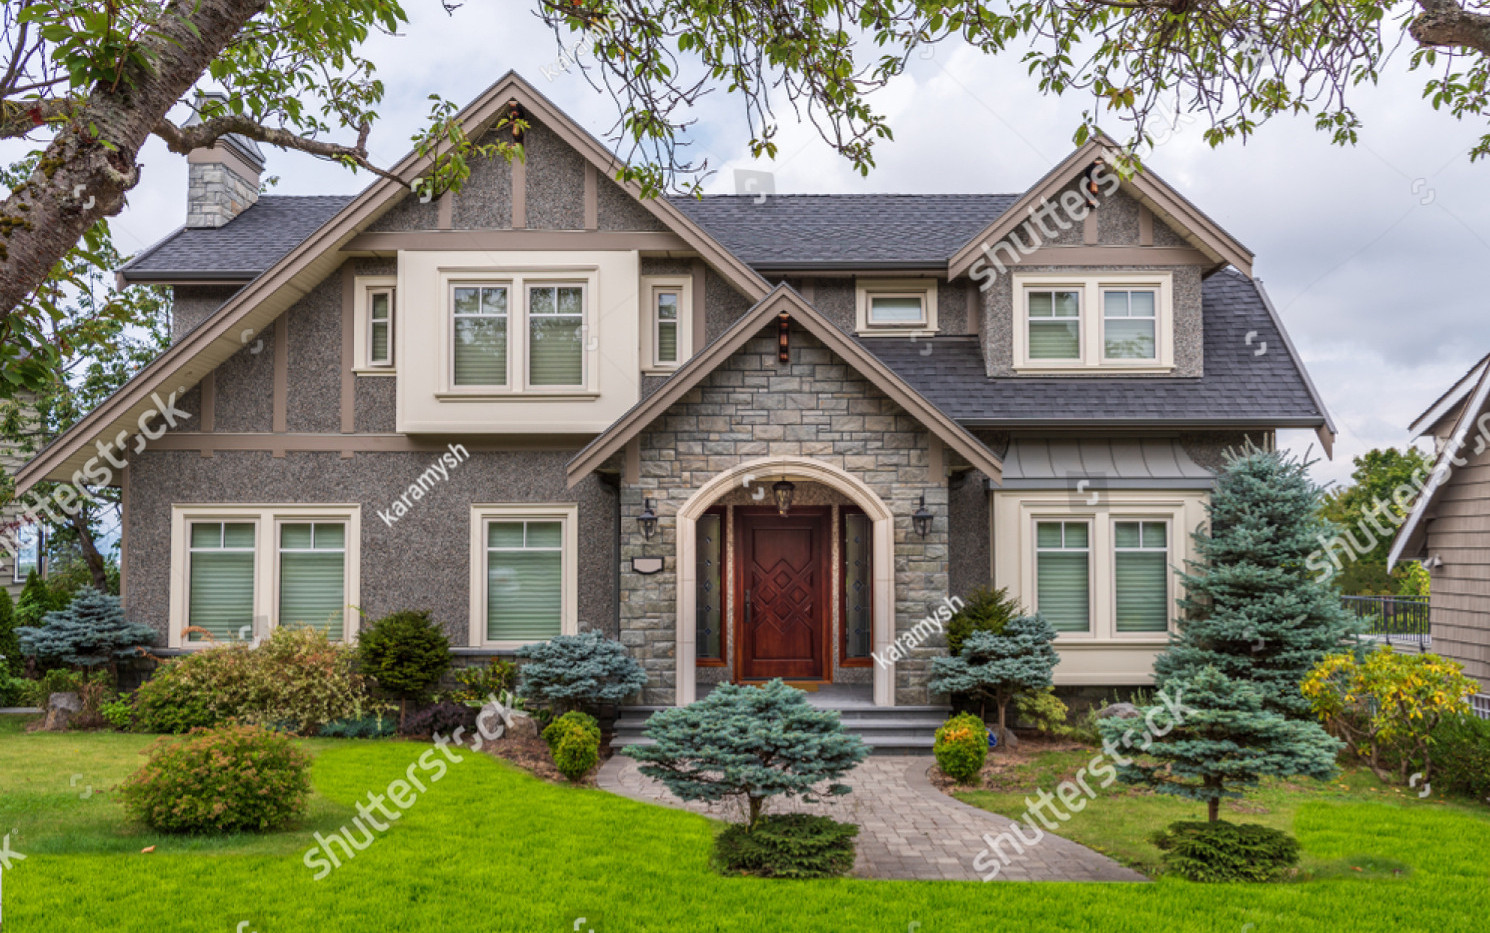 stock-photo-houses-in-suburb-at-summer-i